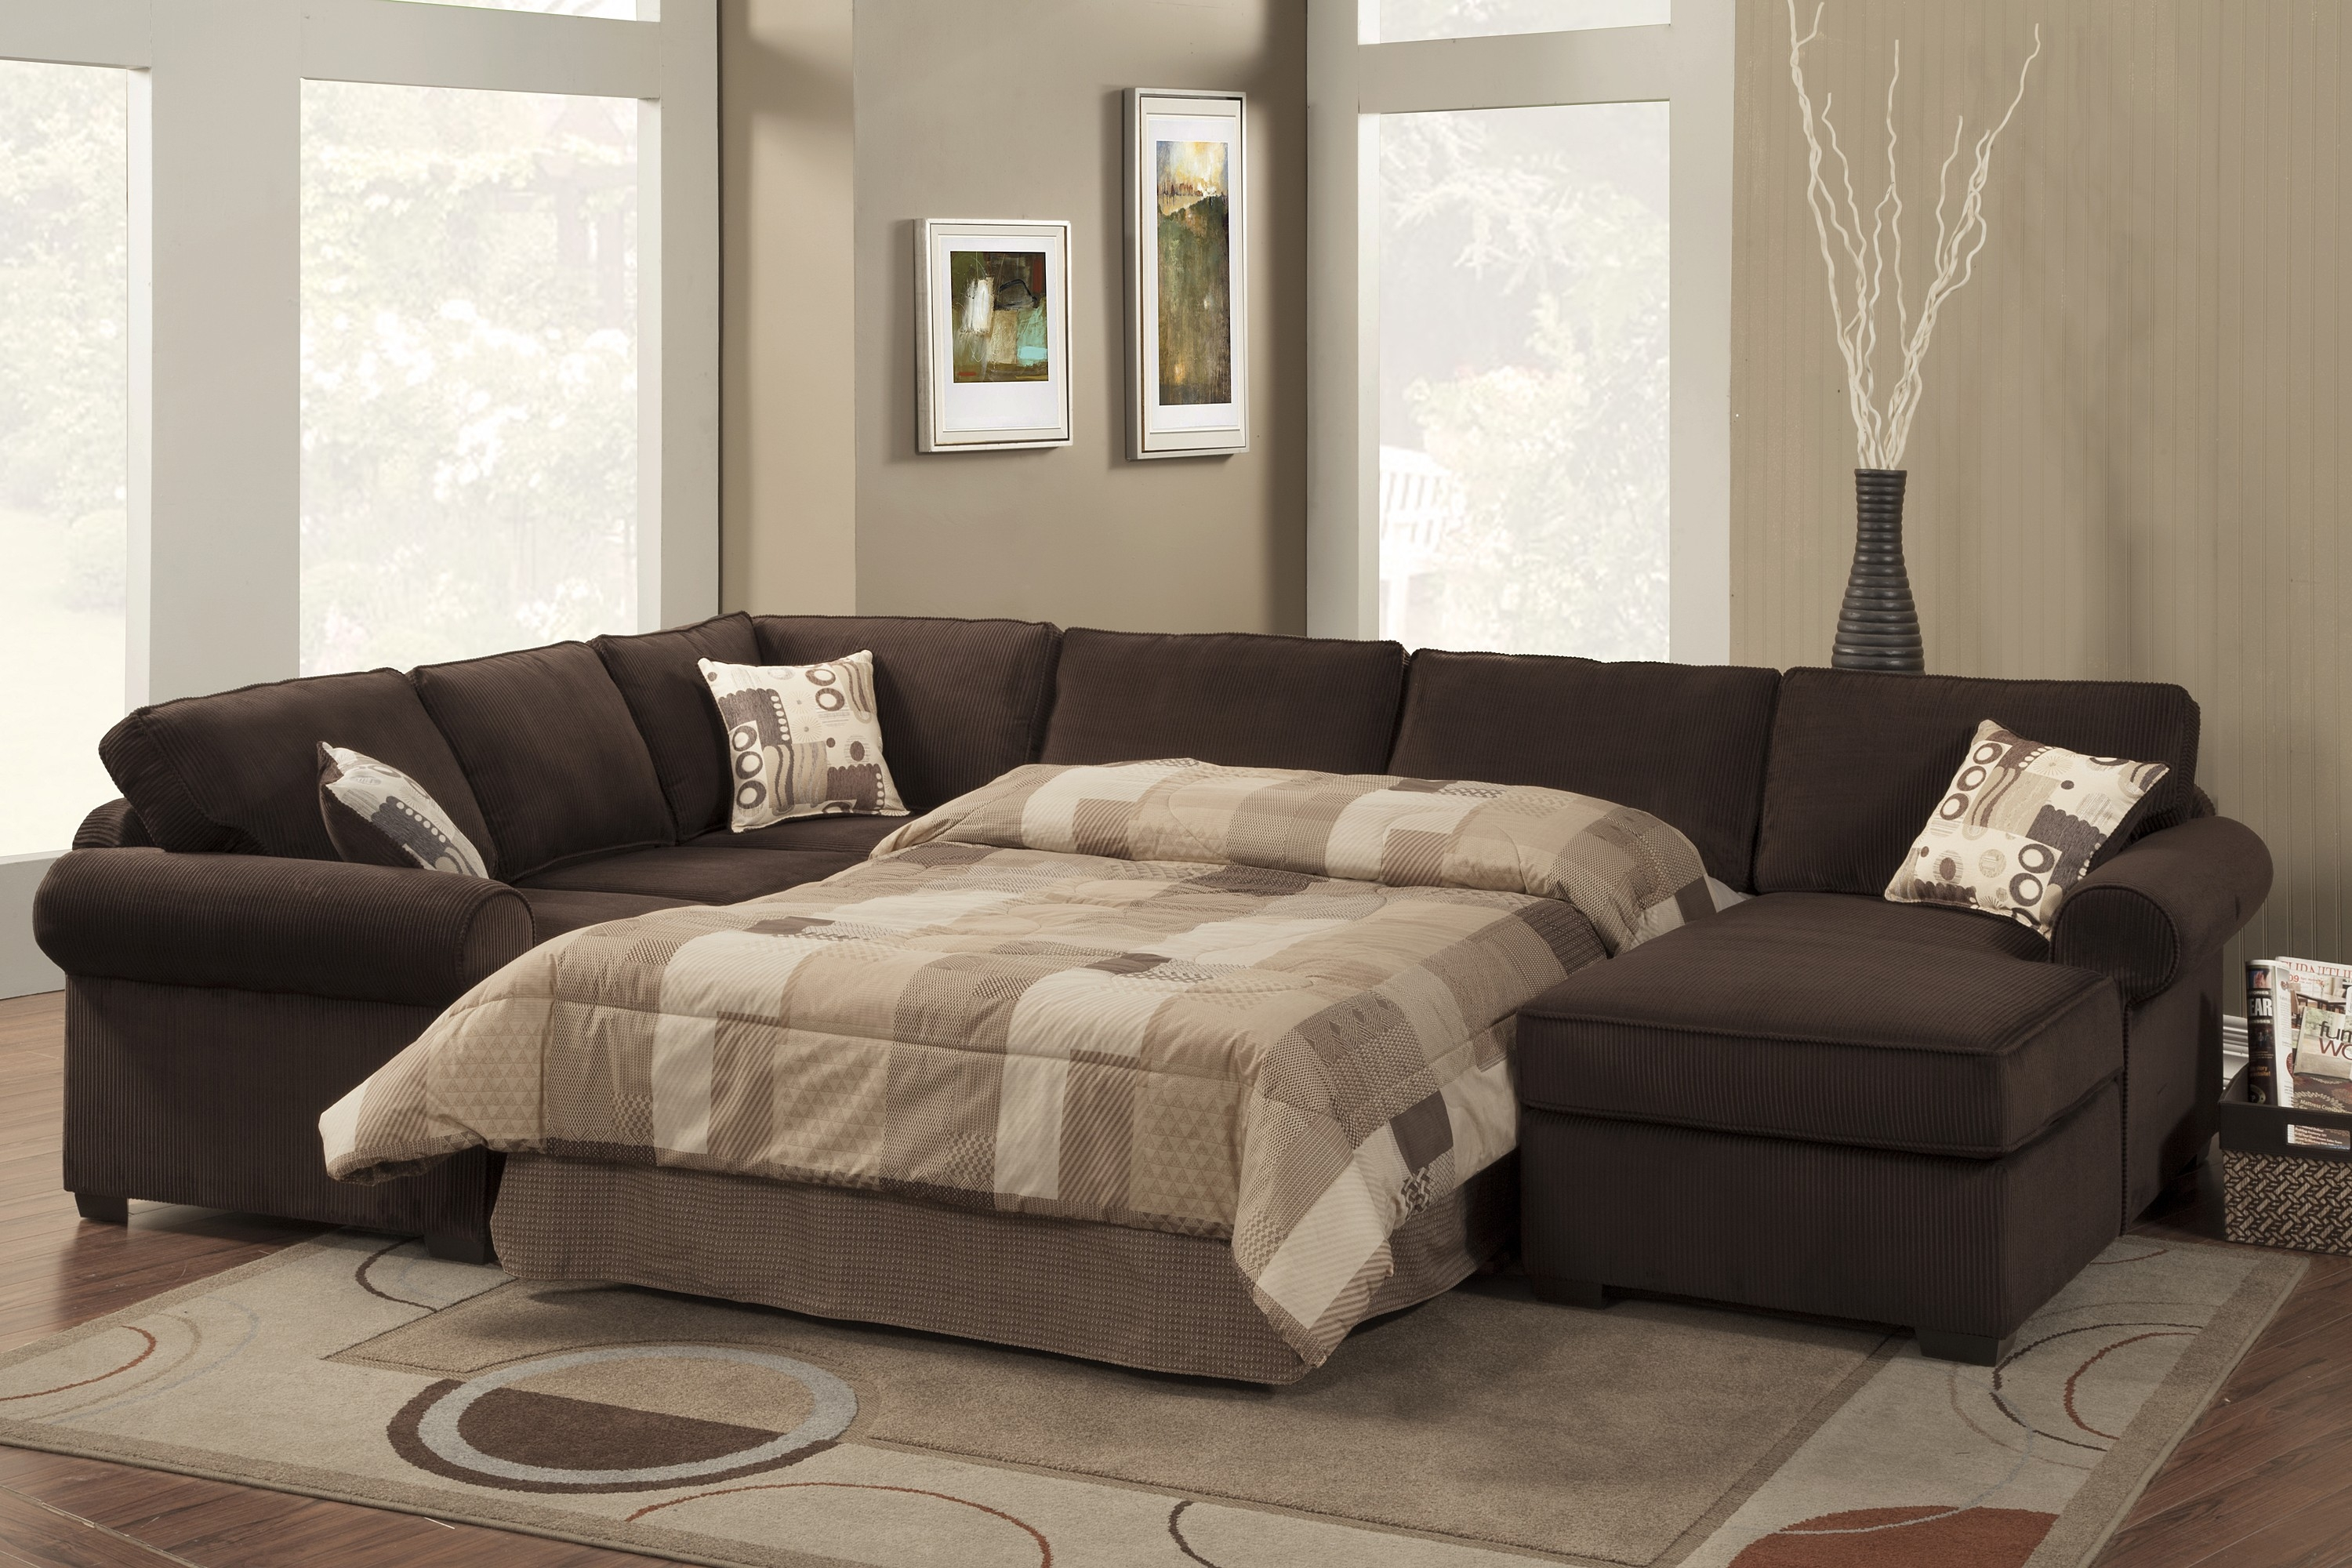 Microfiber Sectional 2 Pc Charcoal Microfiber Sectional Sofa With Regarding 3 Piece Sectional Sleeper Sofa (Image 13 of 15)